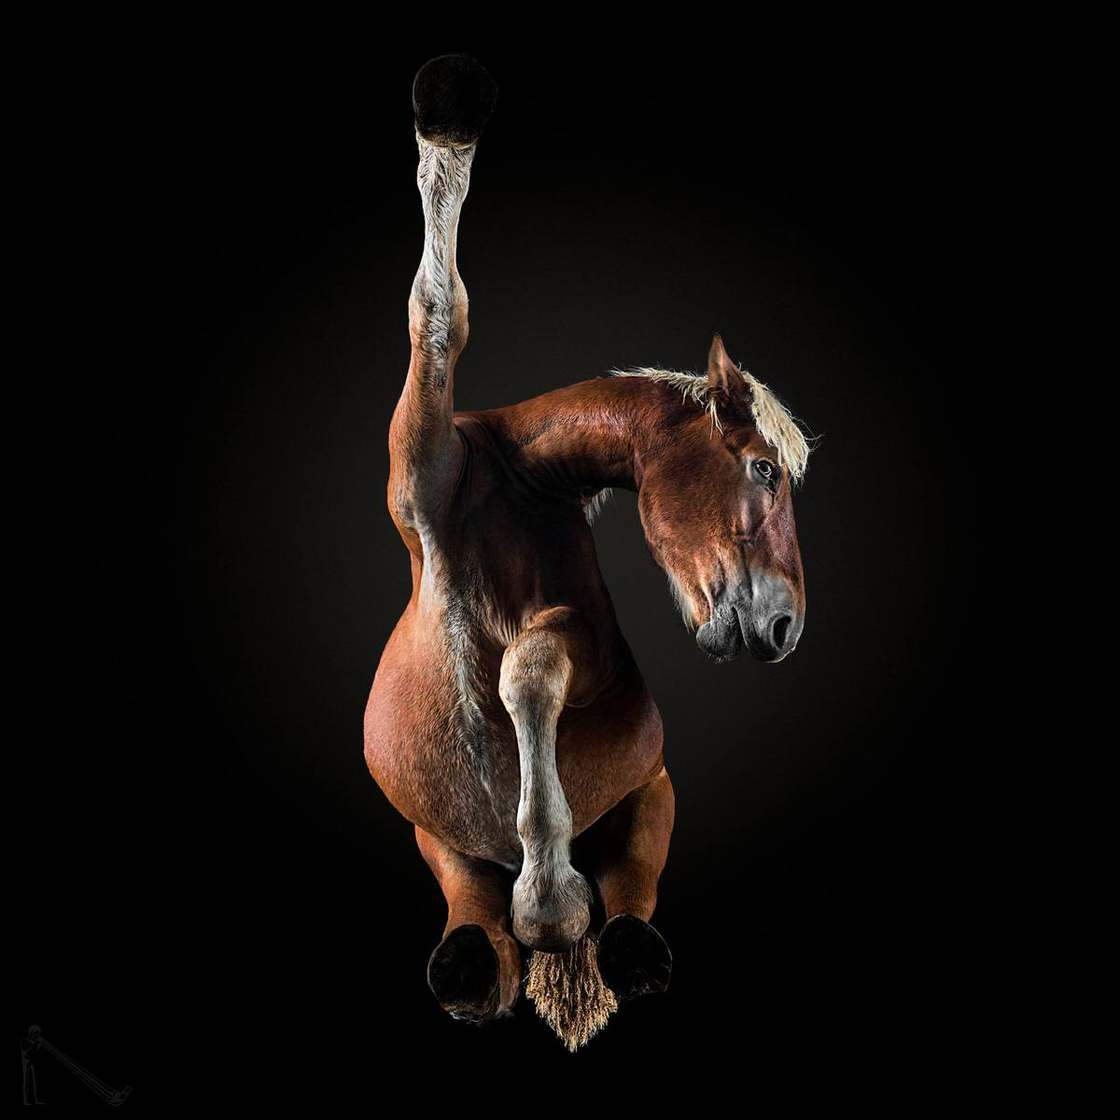 Beautiful Pictures of Horses From the Bottom